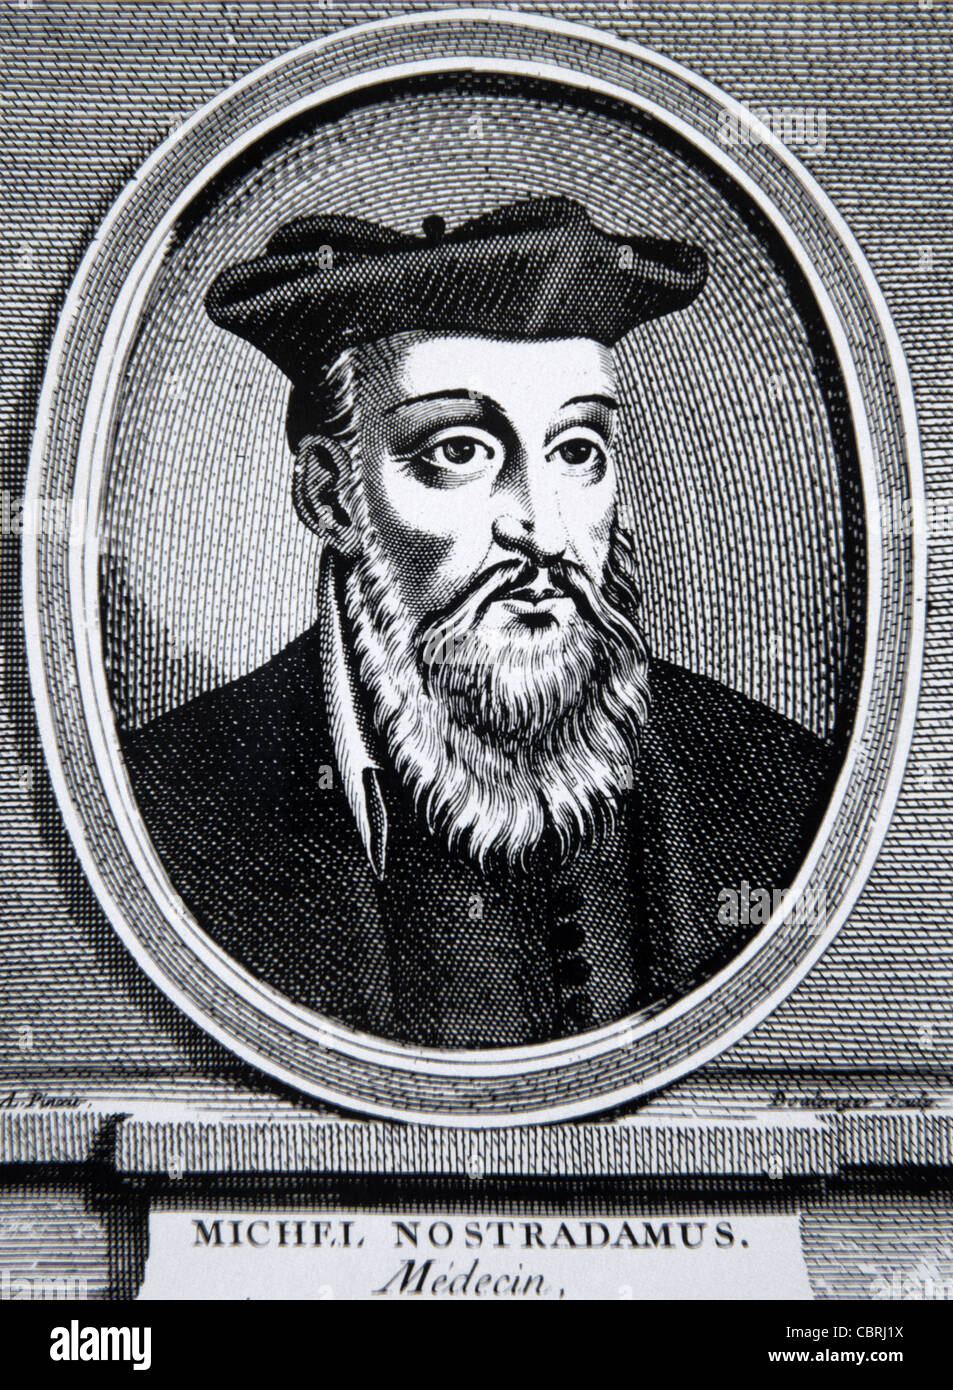 Portrait of Nostradamus or Michel de Nostredame (1503-66) French Apothecary, Seer and Astrologer wearing Medieval Stock Photo